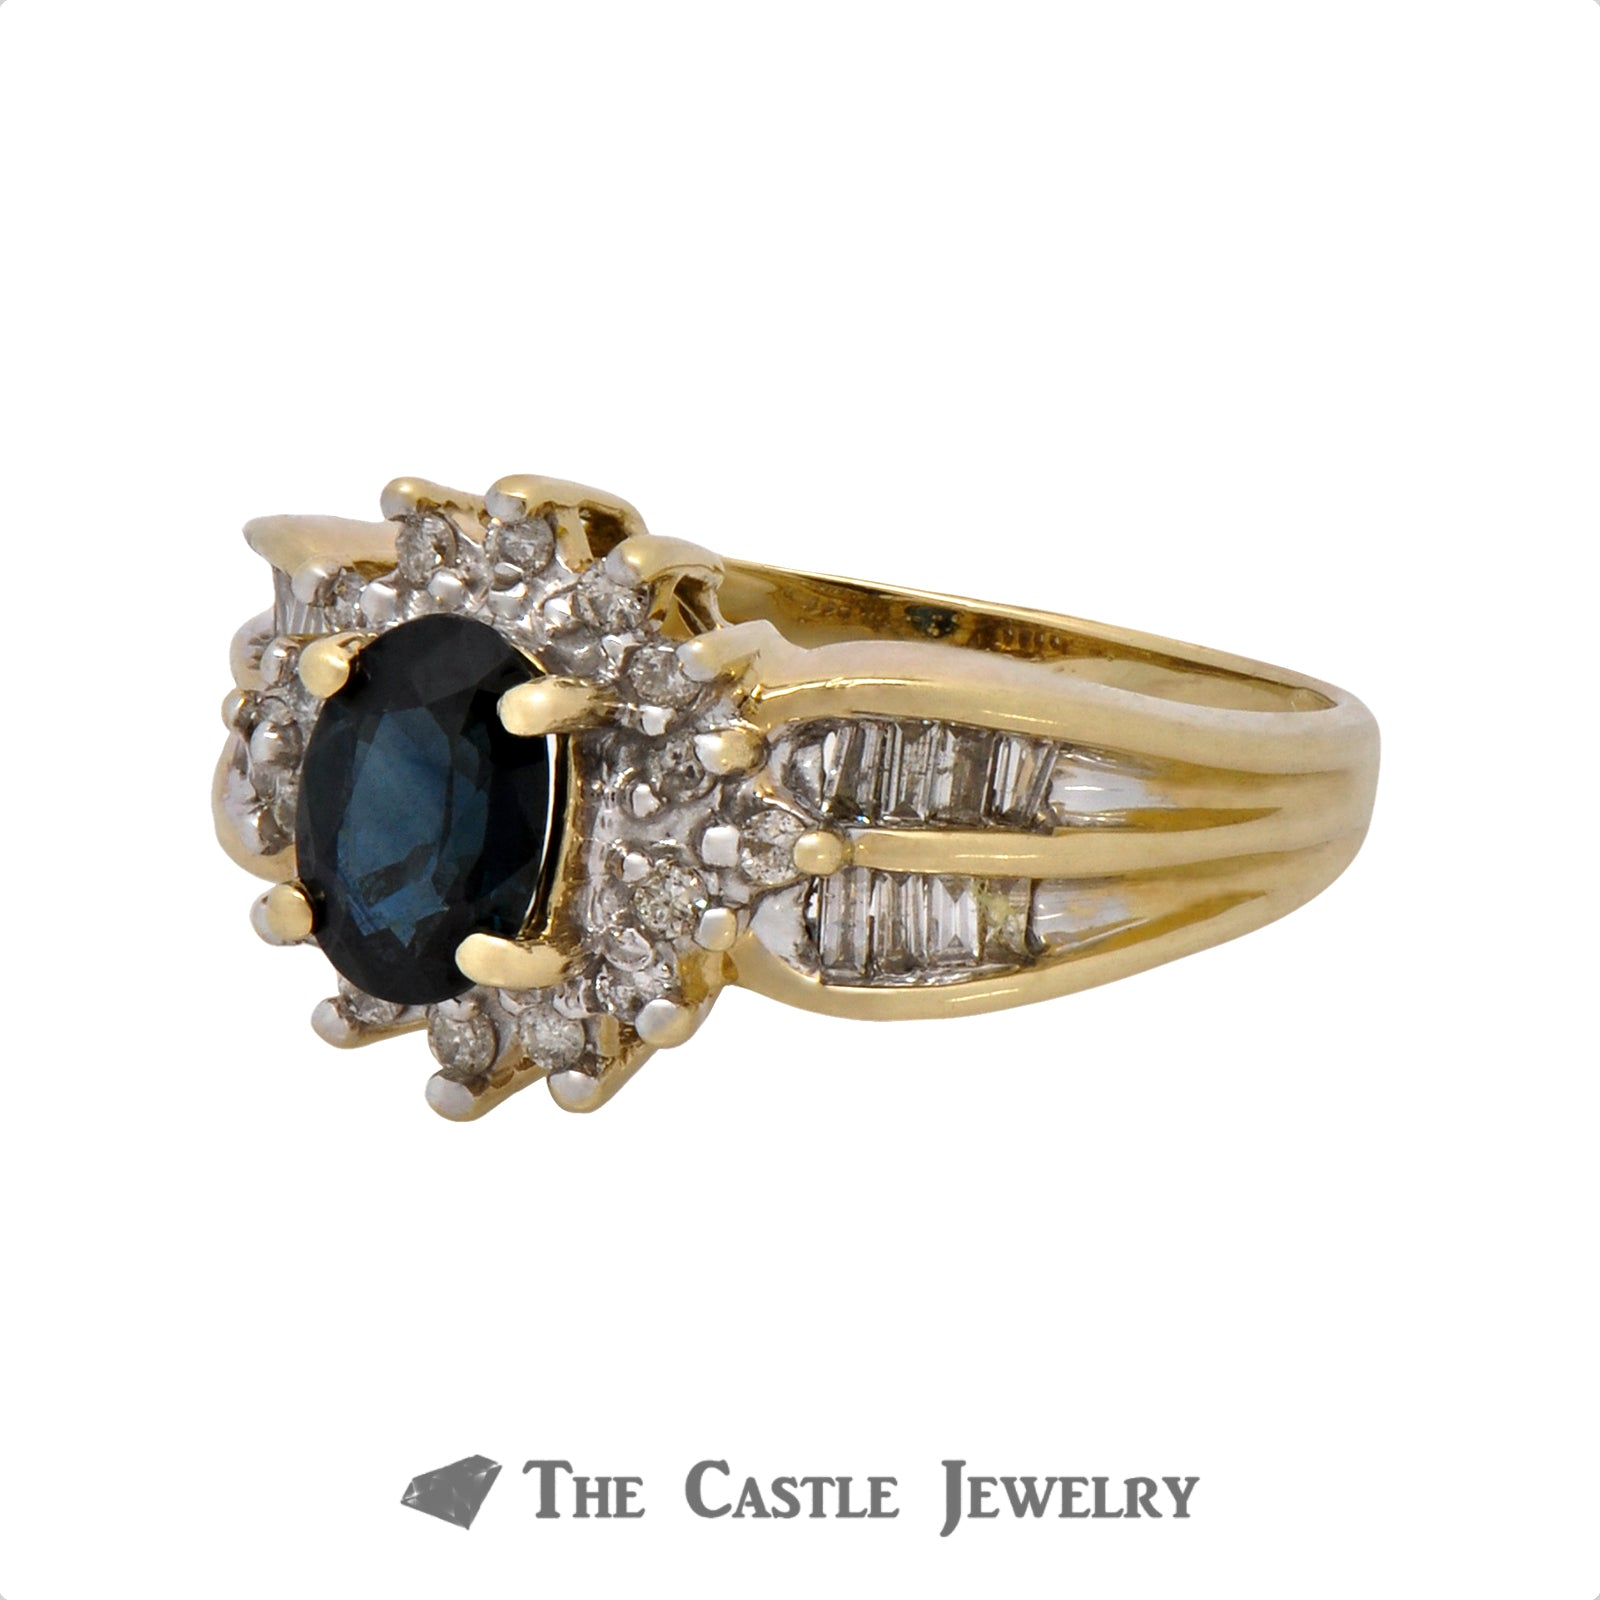 Oval Cut Sapphire Ring with .33cttw Diamond Halo & Accents in 10k Yellow Gold-2